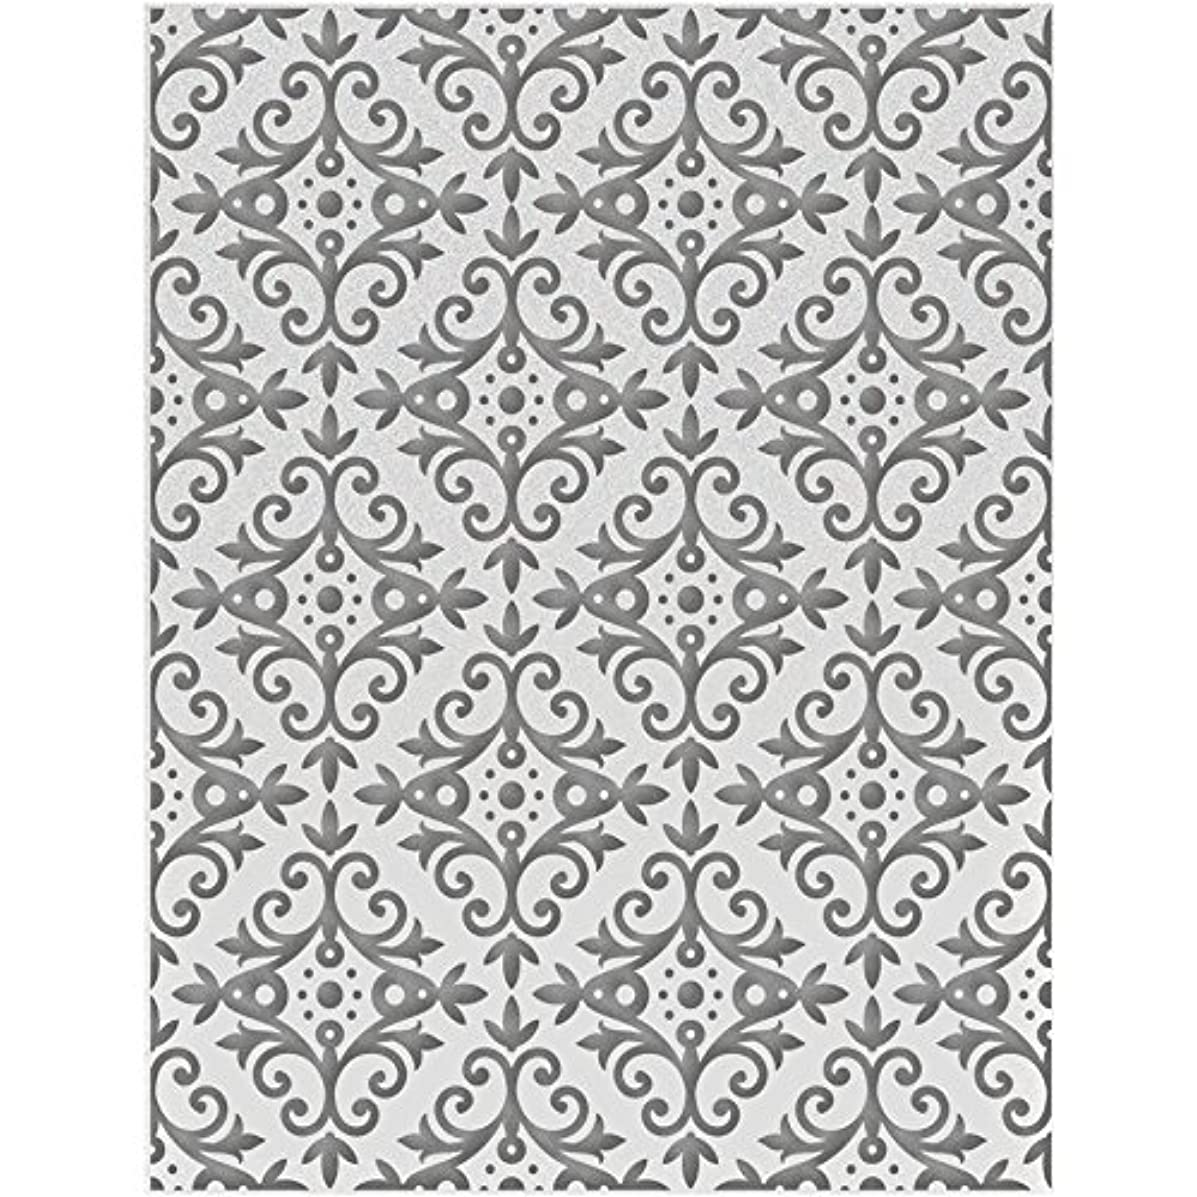 Couture Creations Embossing Folder A2-Garden Frame - Hearts Ease